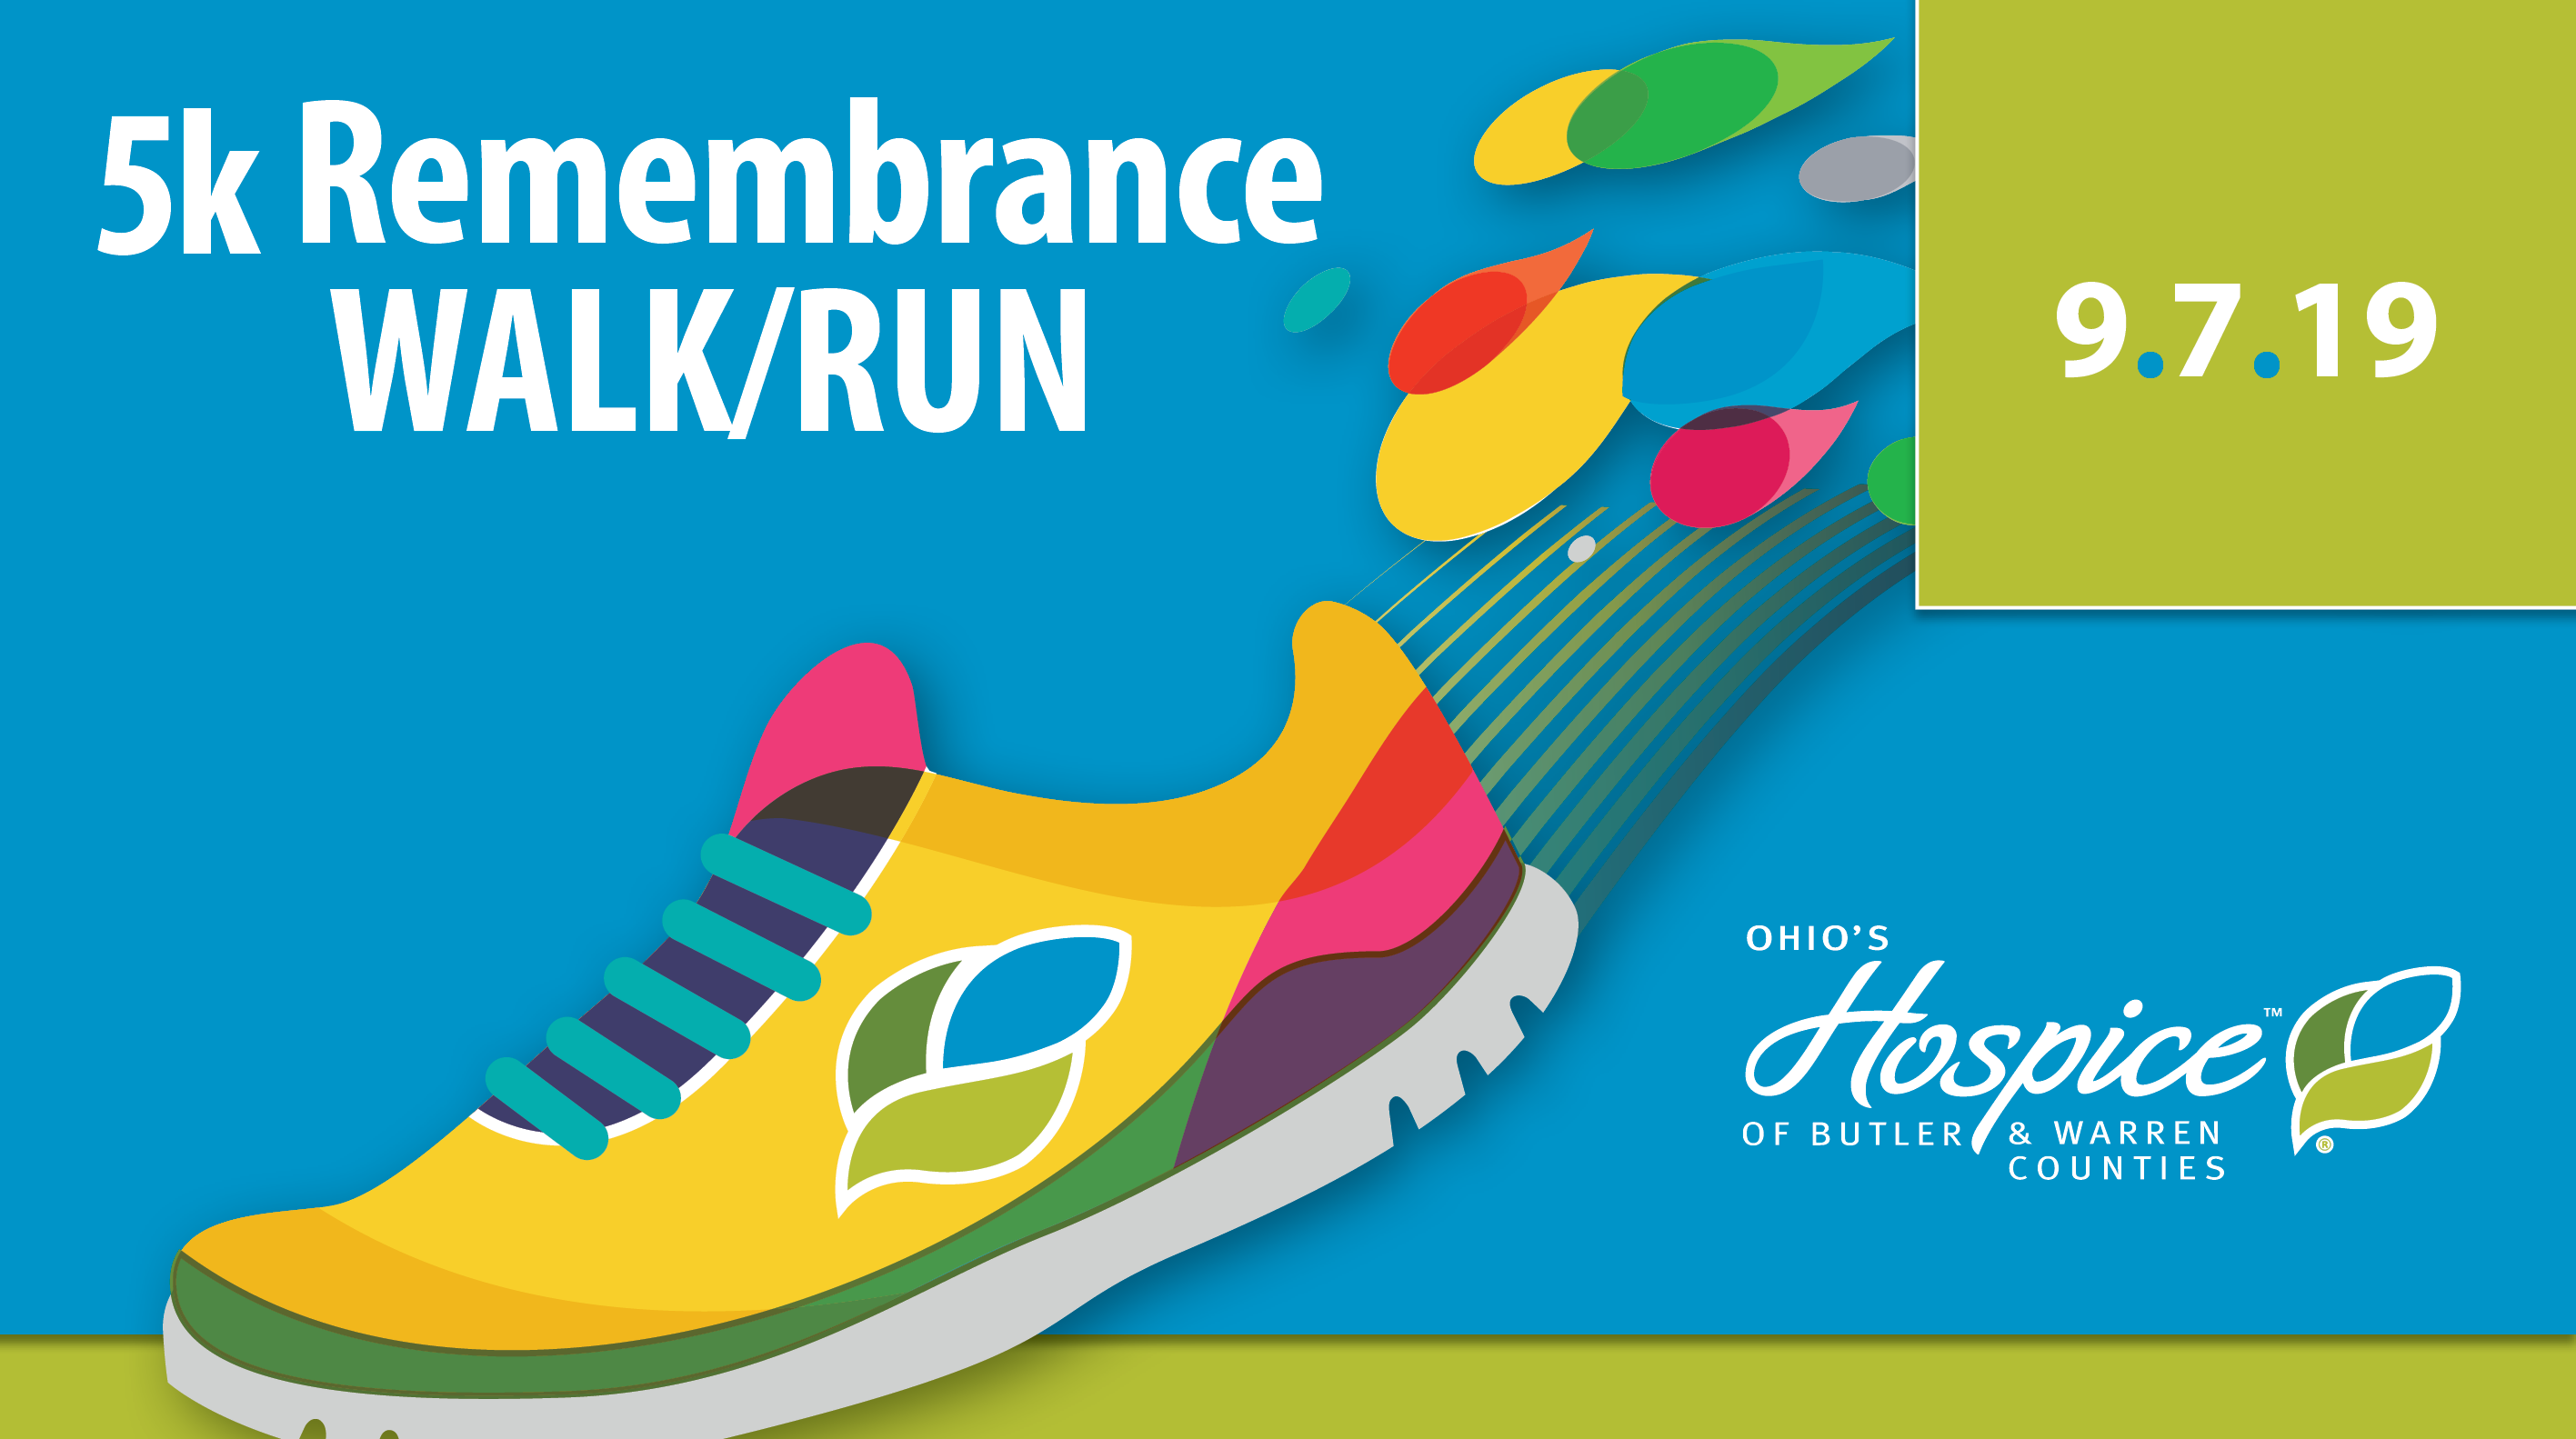 Ohio's Hospice of Butler & Warren Counties Annual Remembrance Walk/Run